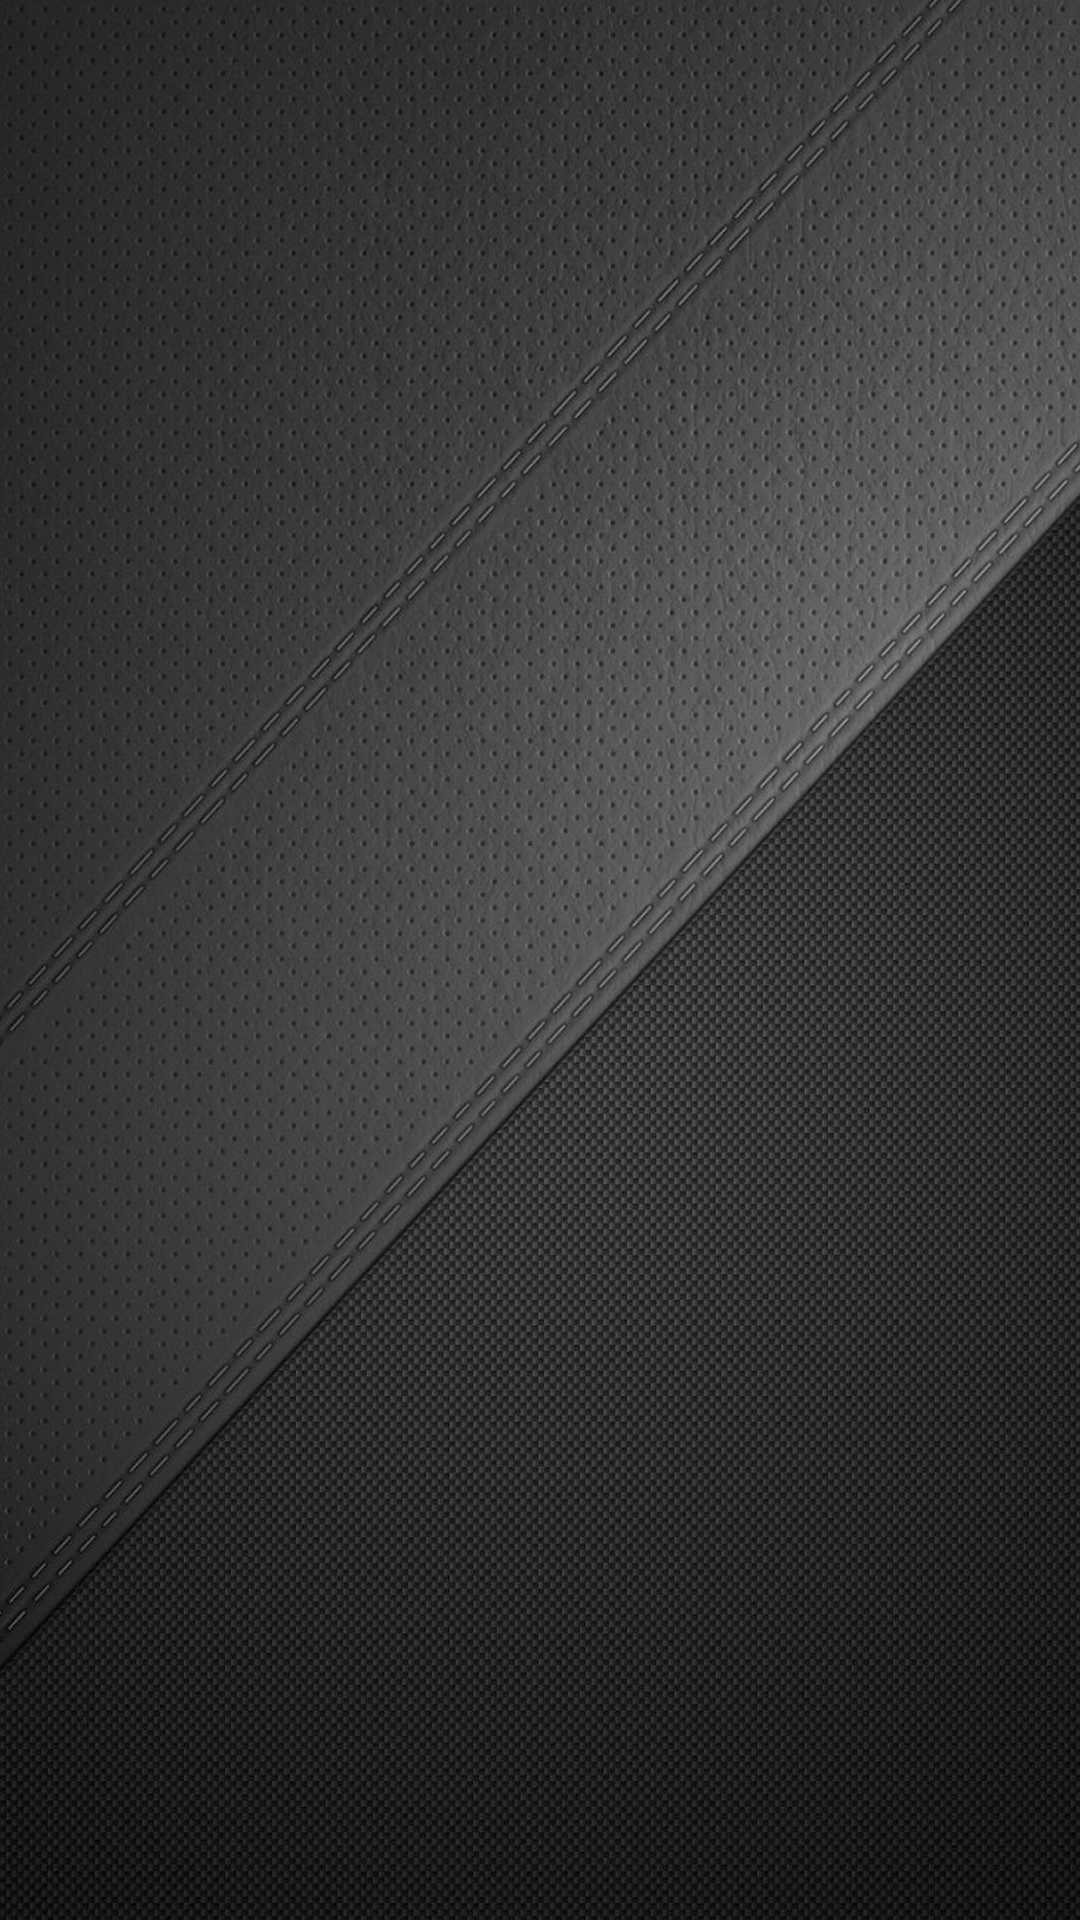 One Wallpapers in Best 1080x1920 Resolutions | Carolann Blattner BsnSCB.com